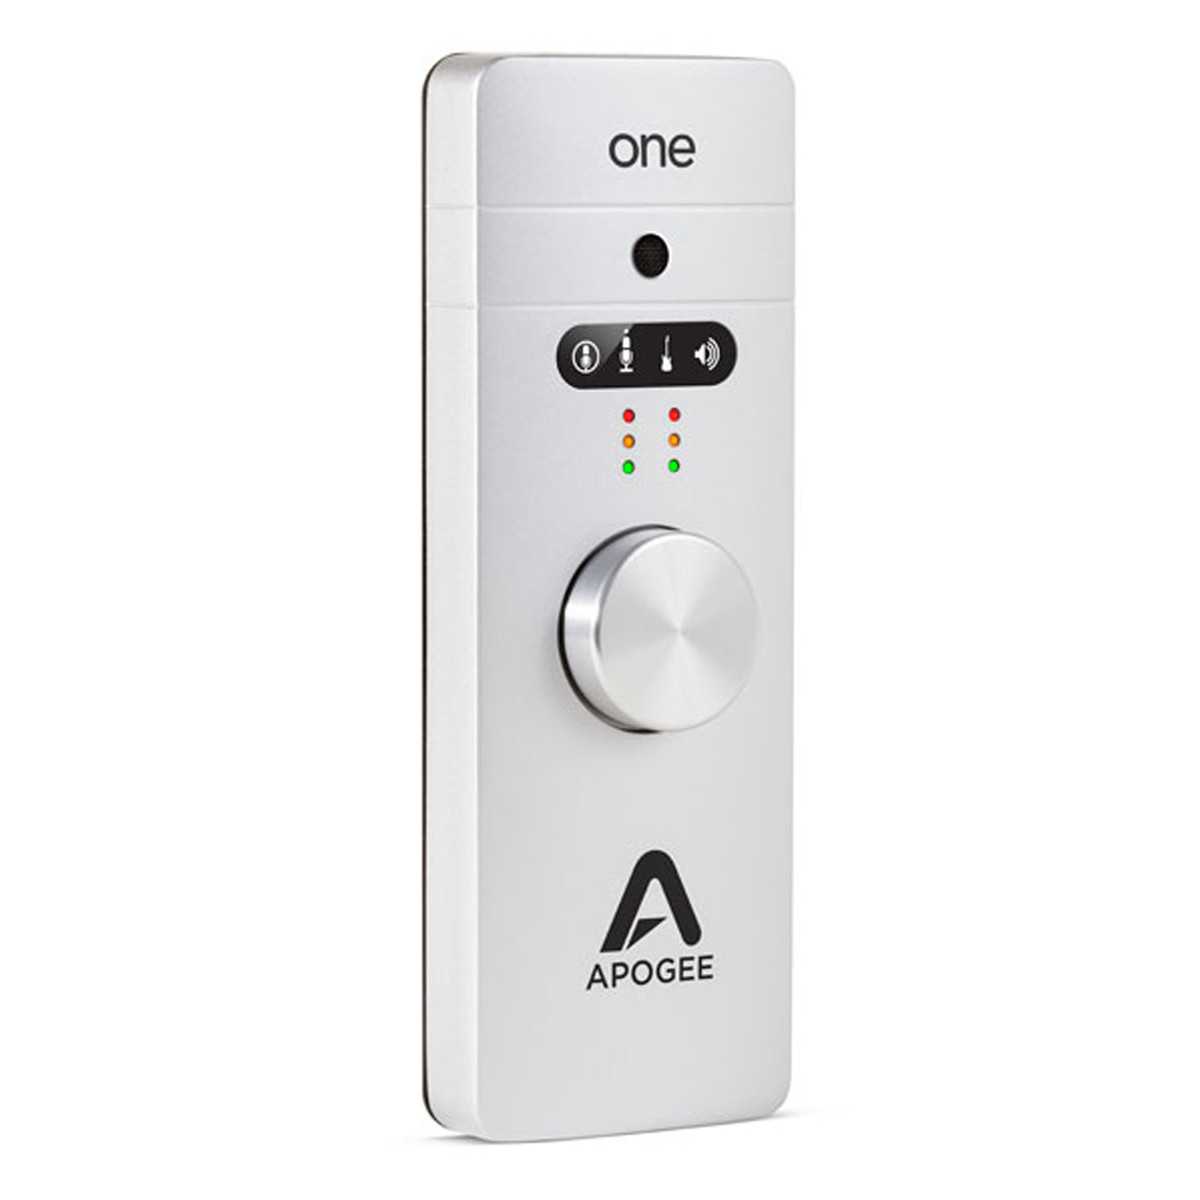 Image of Apogee ONE USB Audio Interface and Microphone for Mac